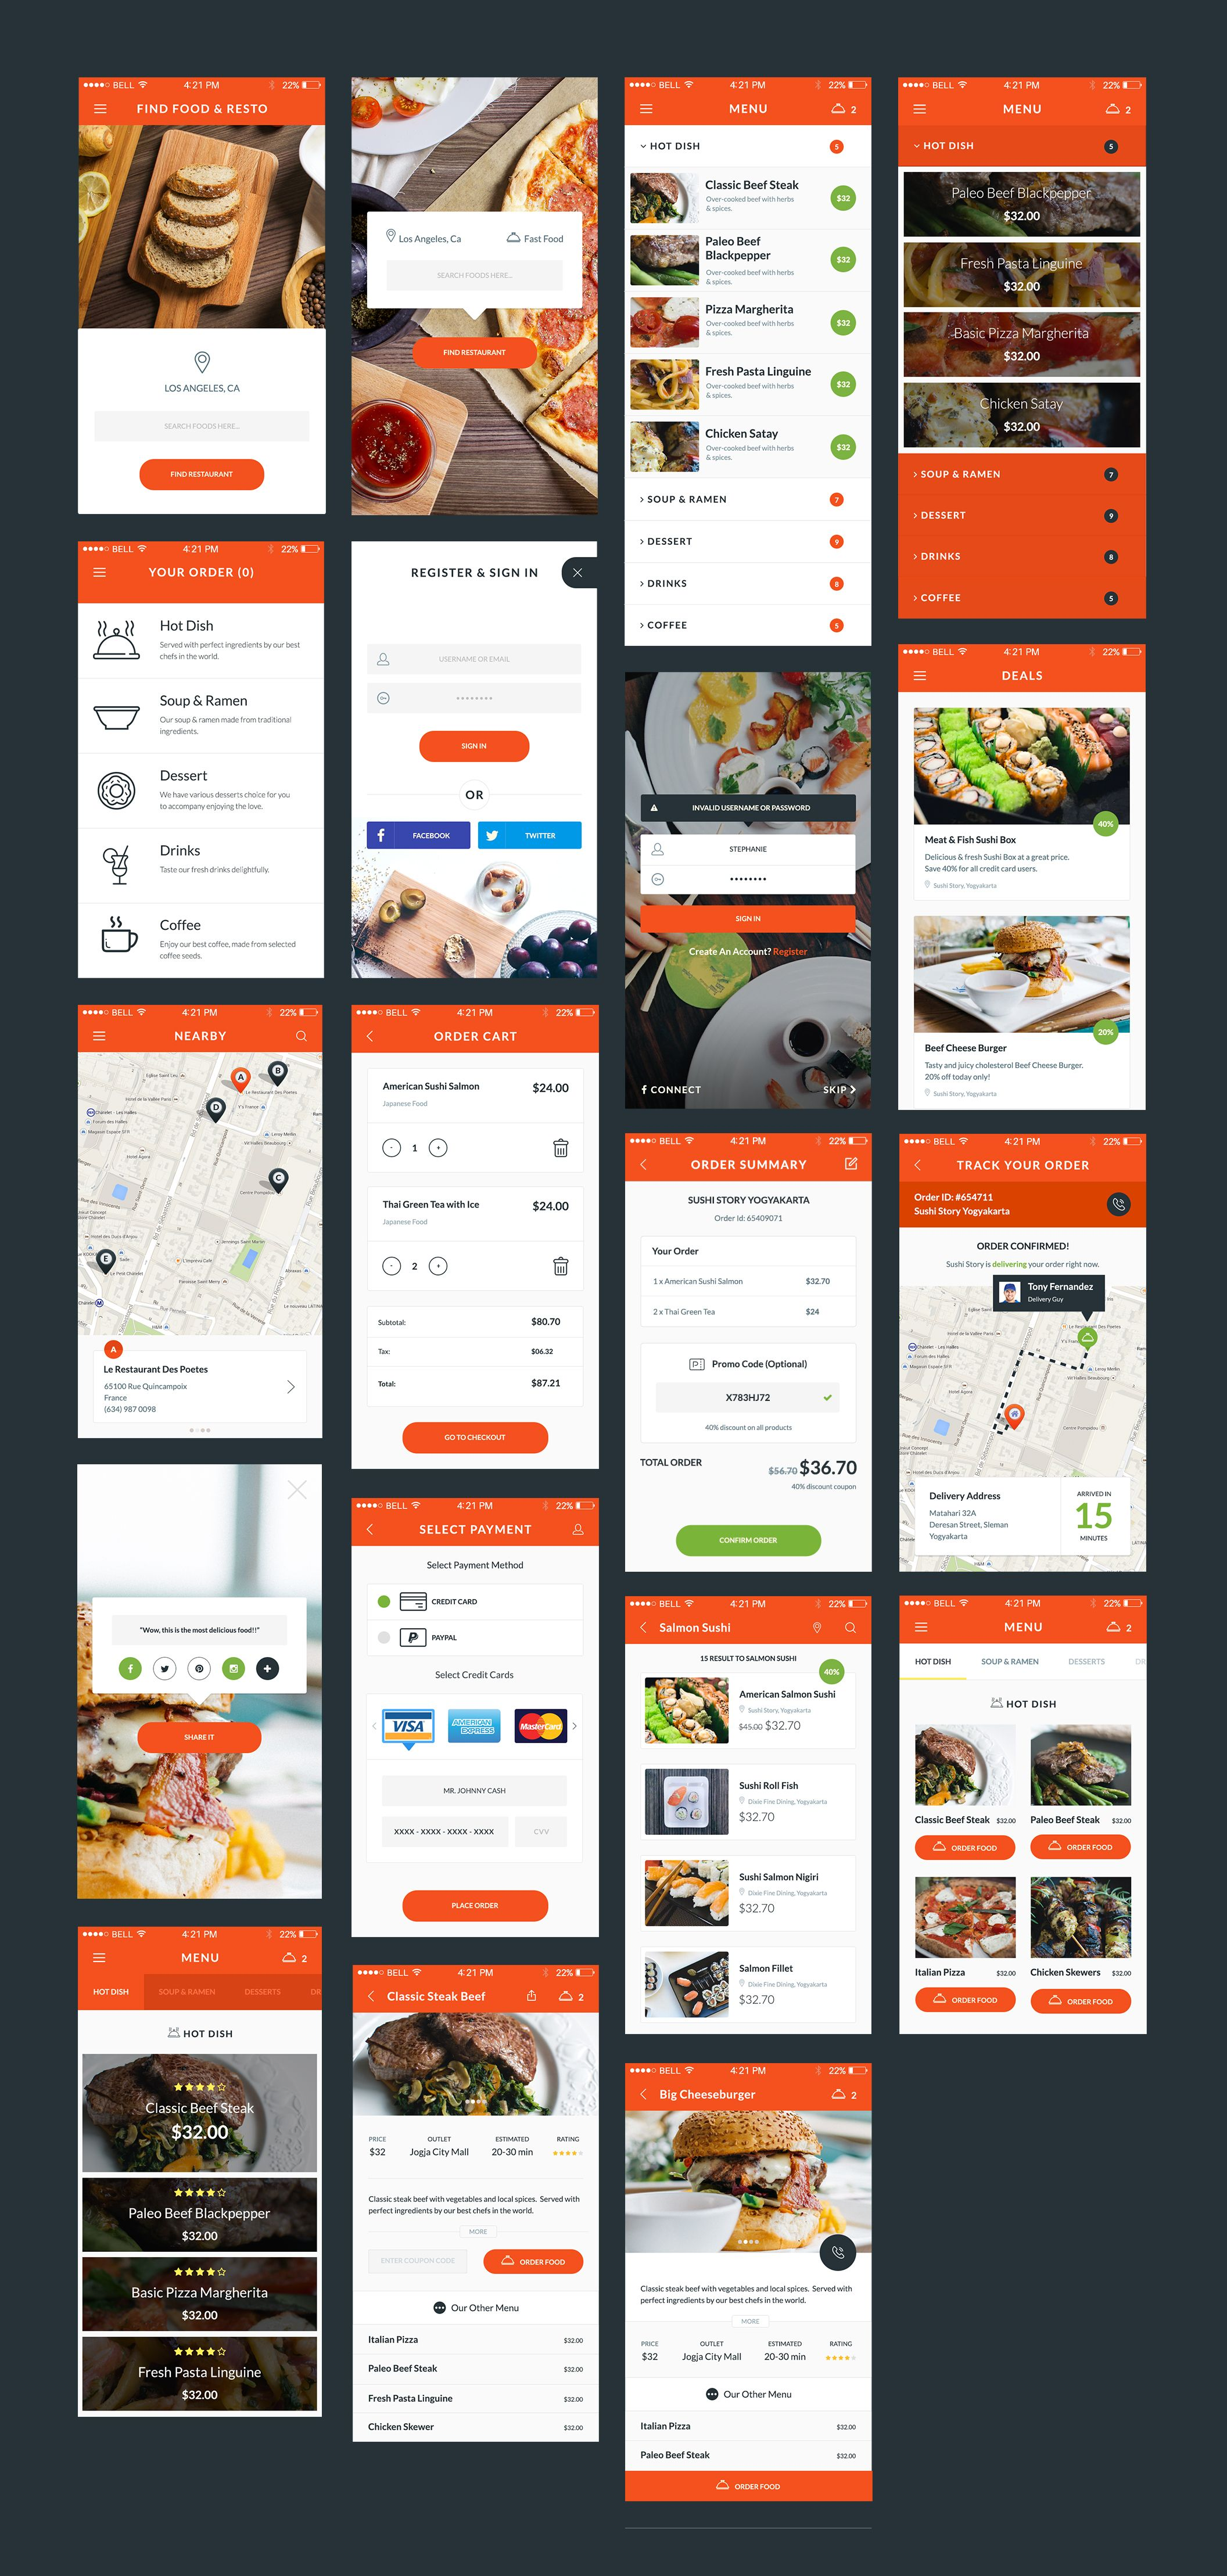 The simple layout of the app 'Food & Resto' makes the